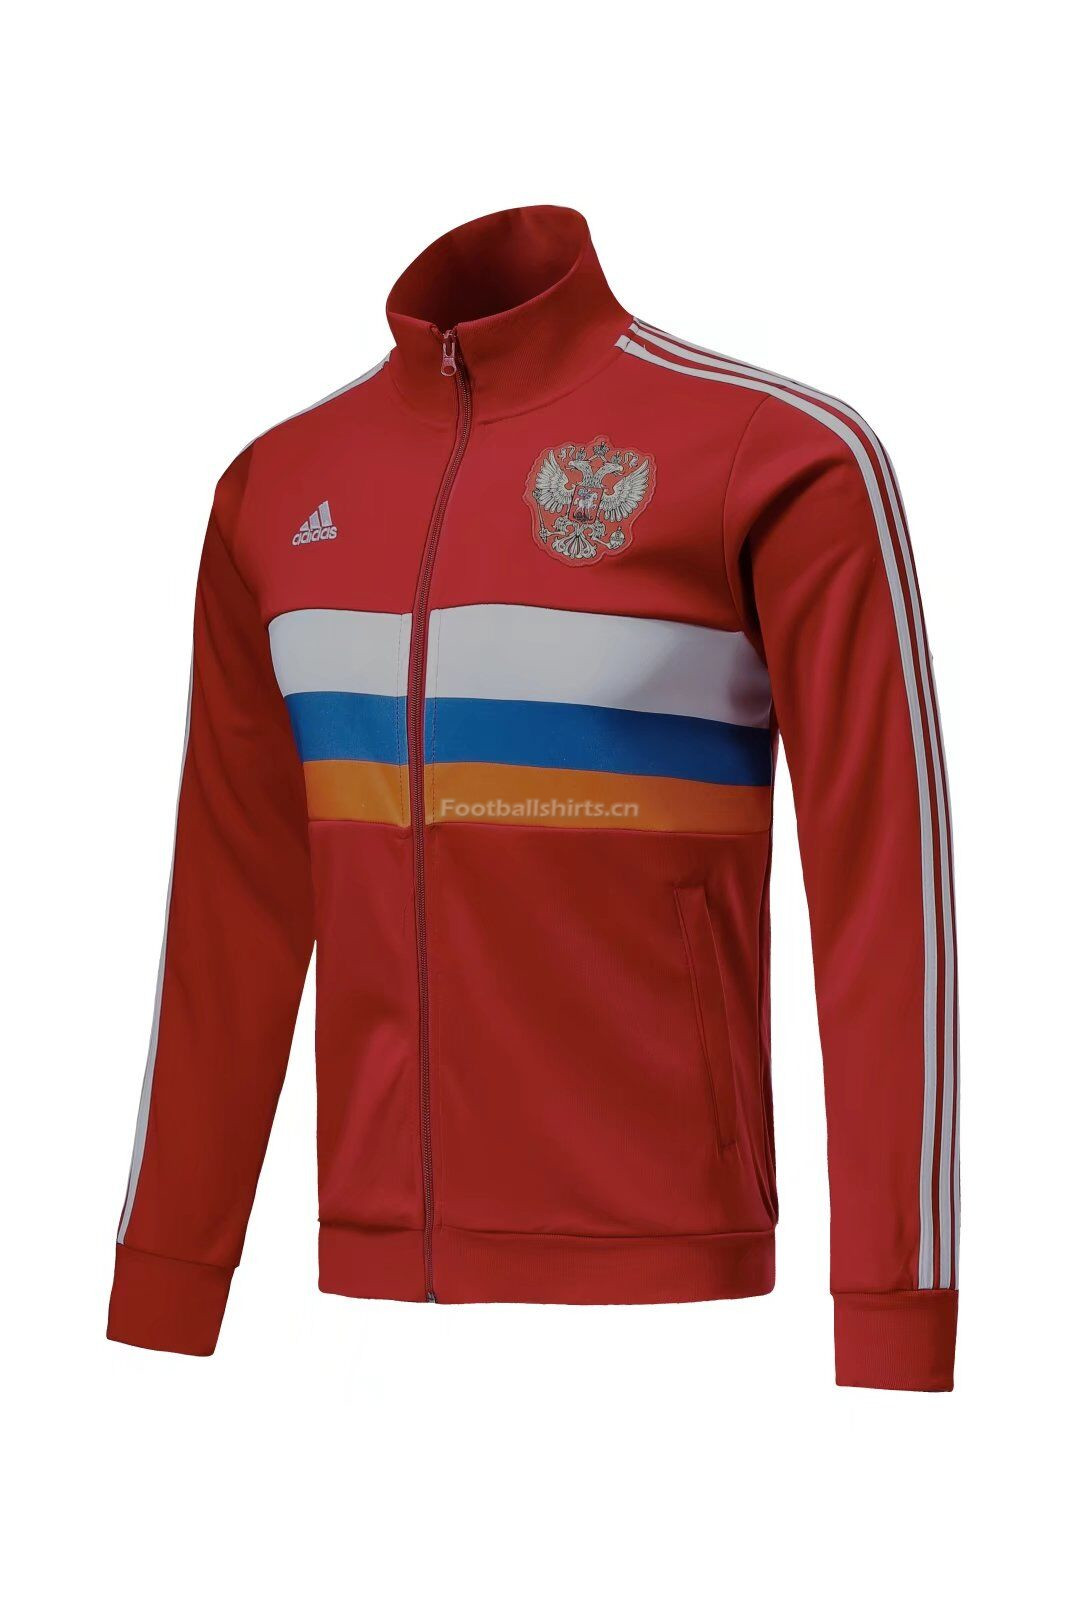 Russia 2018 World Cup Red Training Jacket